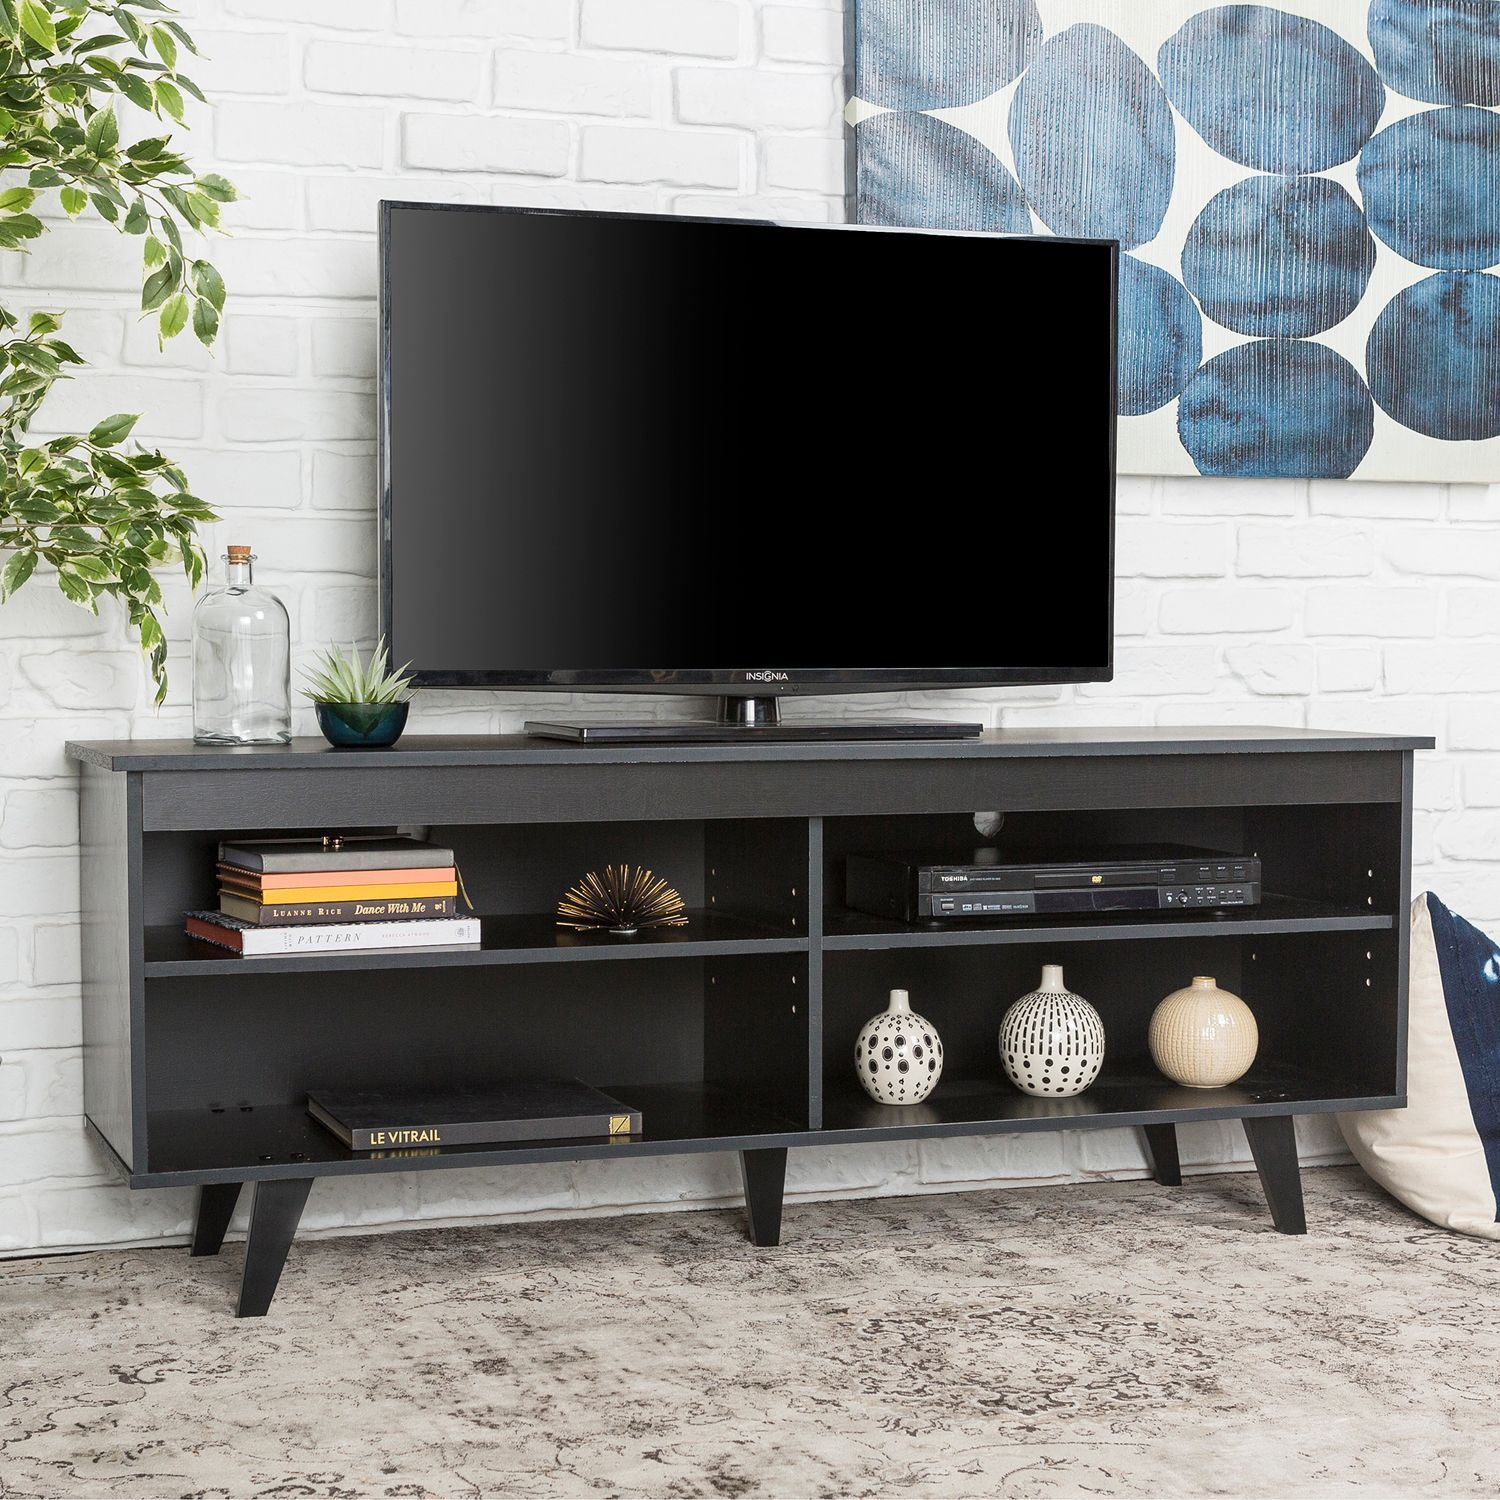 Modern Contemporary Black Tv Stand Pier 1 Imports Tv Stand Decor Living Room Tv Stand Decor Black Tv Stand